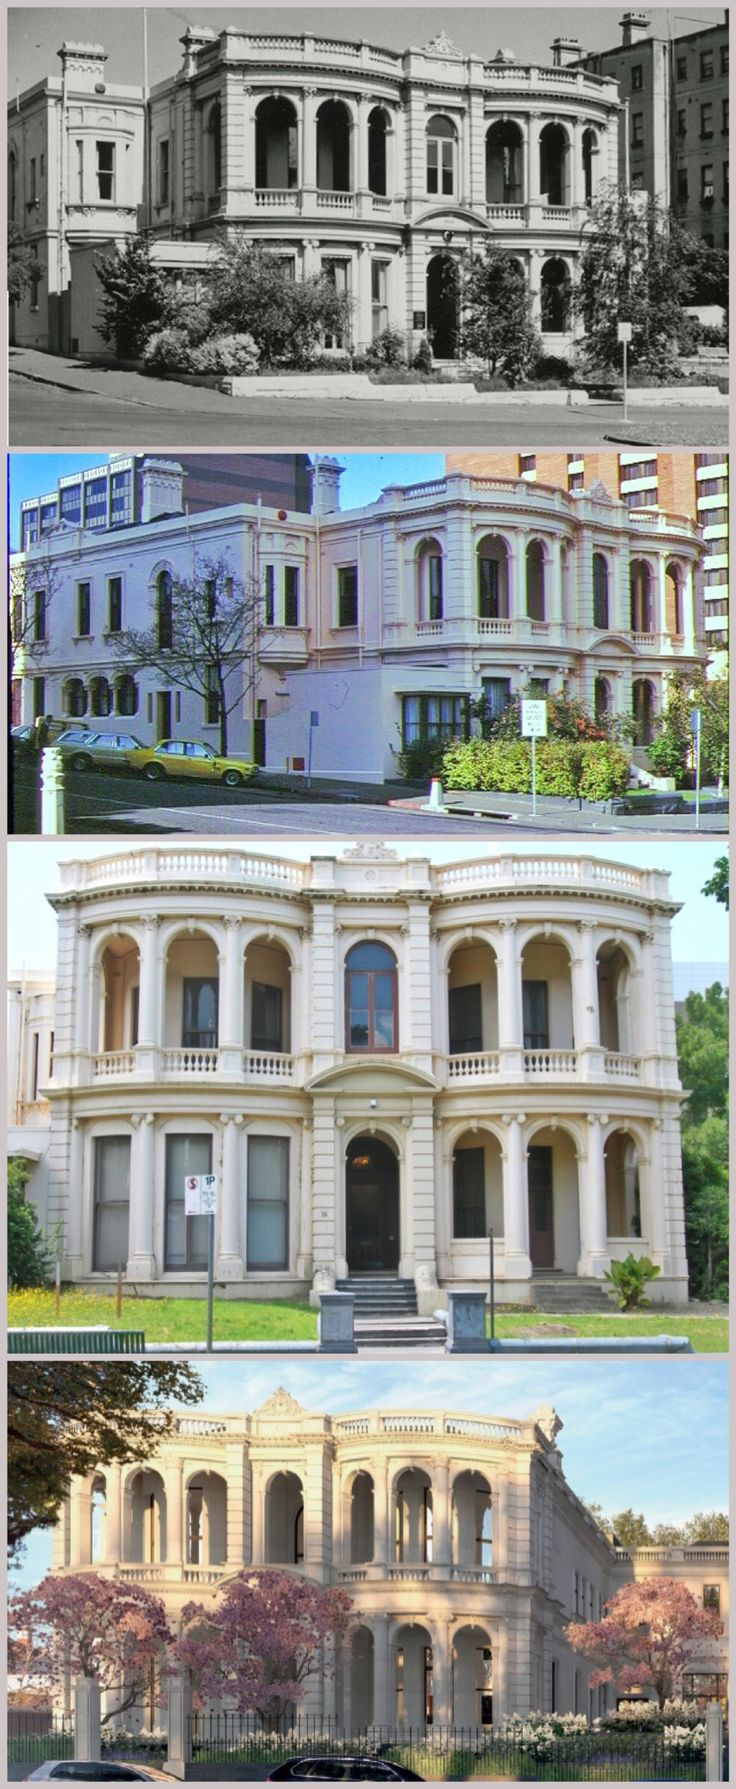 Mosspennoch, East Melbourne, is an Italianate mansion designed by Charles Webb and built in 1881 (ballroom added 1890) for James Liddell Purves, QC, MLA, who lived there until 1903. After his departure, it was used as a boarding house, divided into flats, occupied by the Red Cross, adapted as medical suites and then for 20 years remained unoccupied, rundown and vandalised. It is now being restored and converted into six luxury apartments.